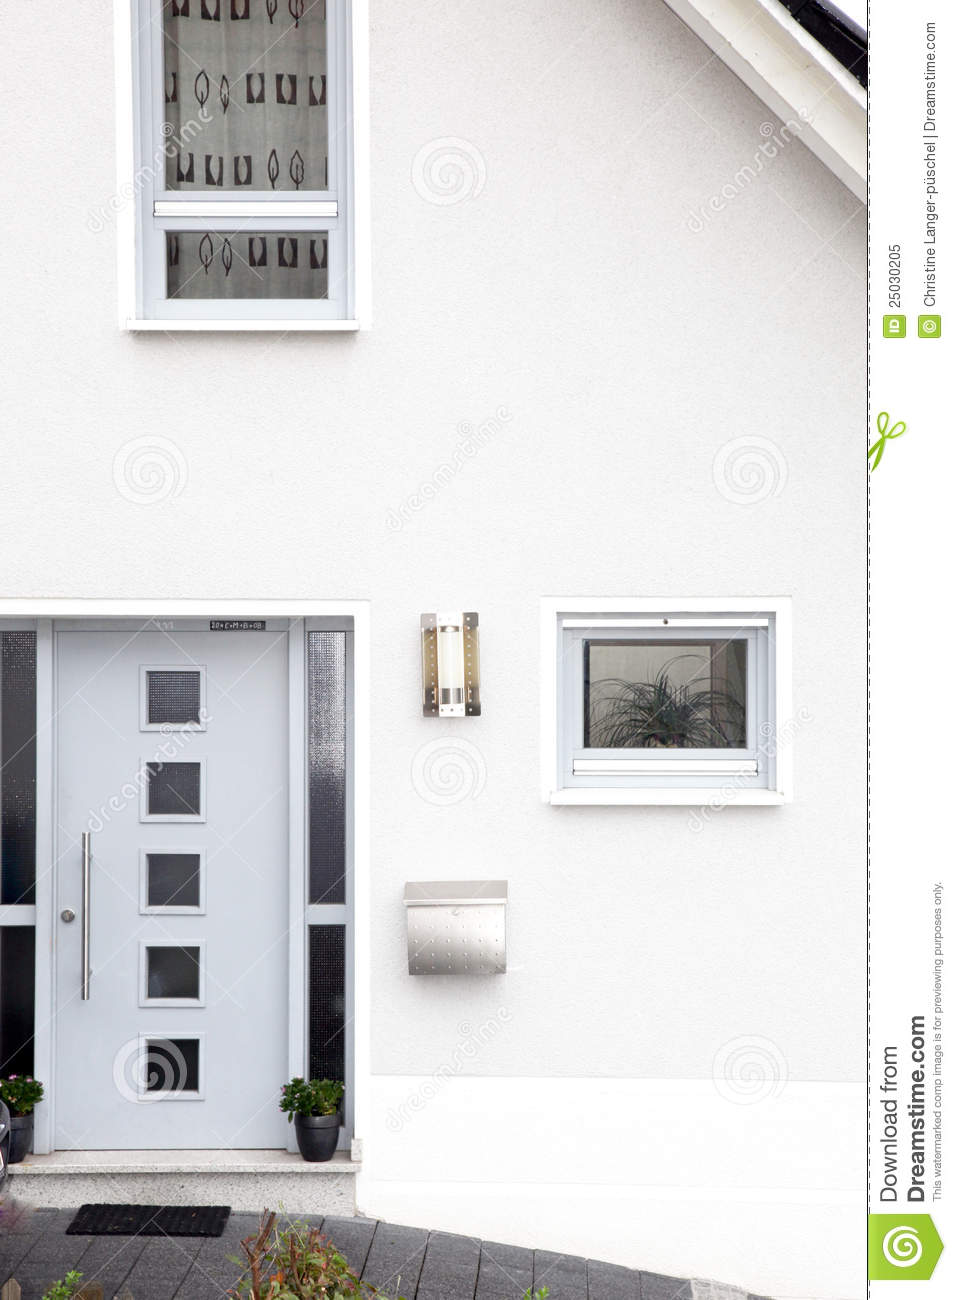 Front door of a modern house stock image image of for House door image